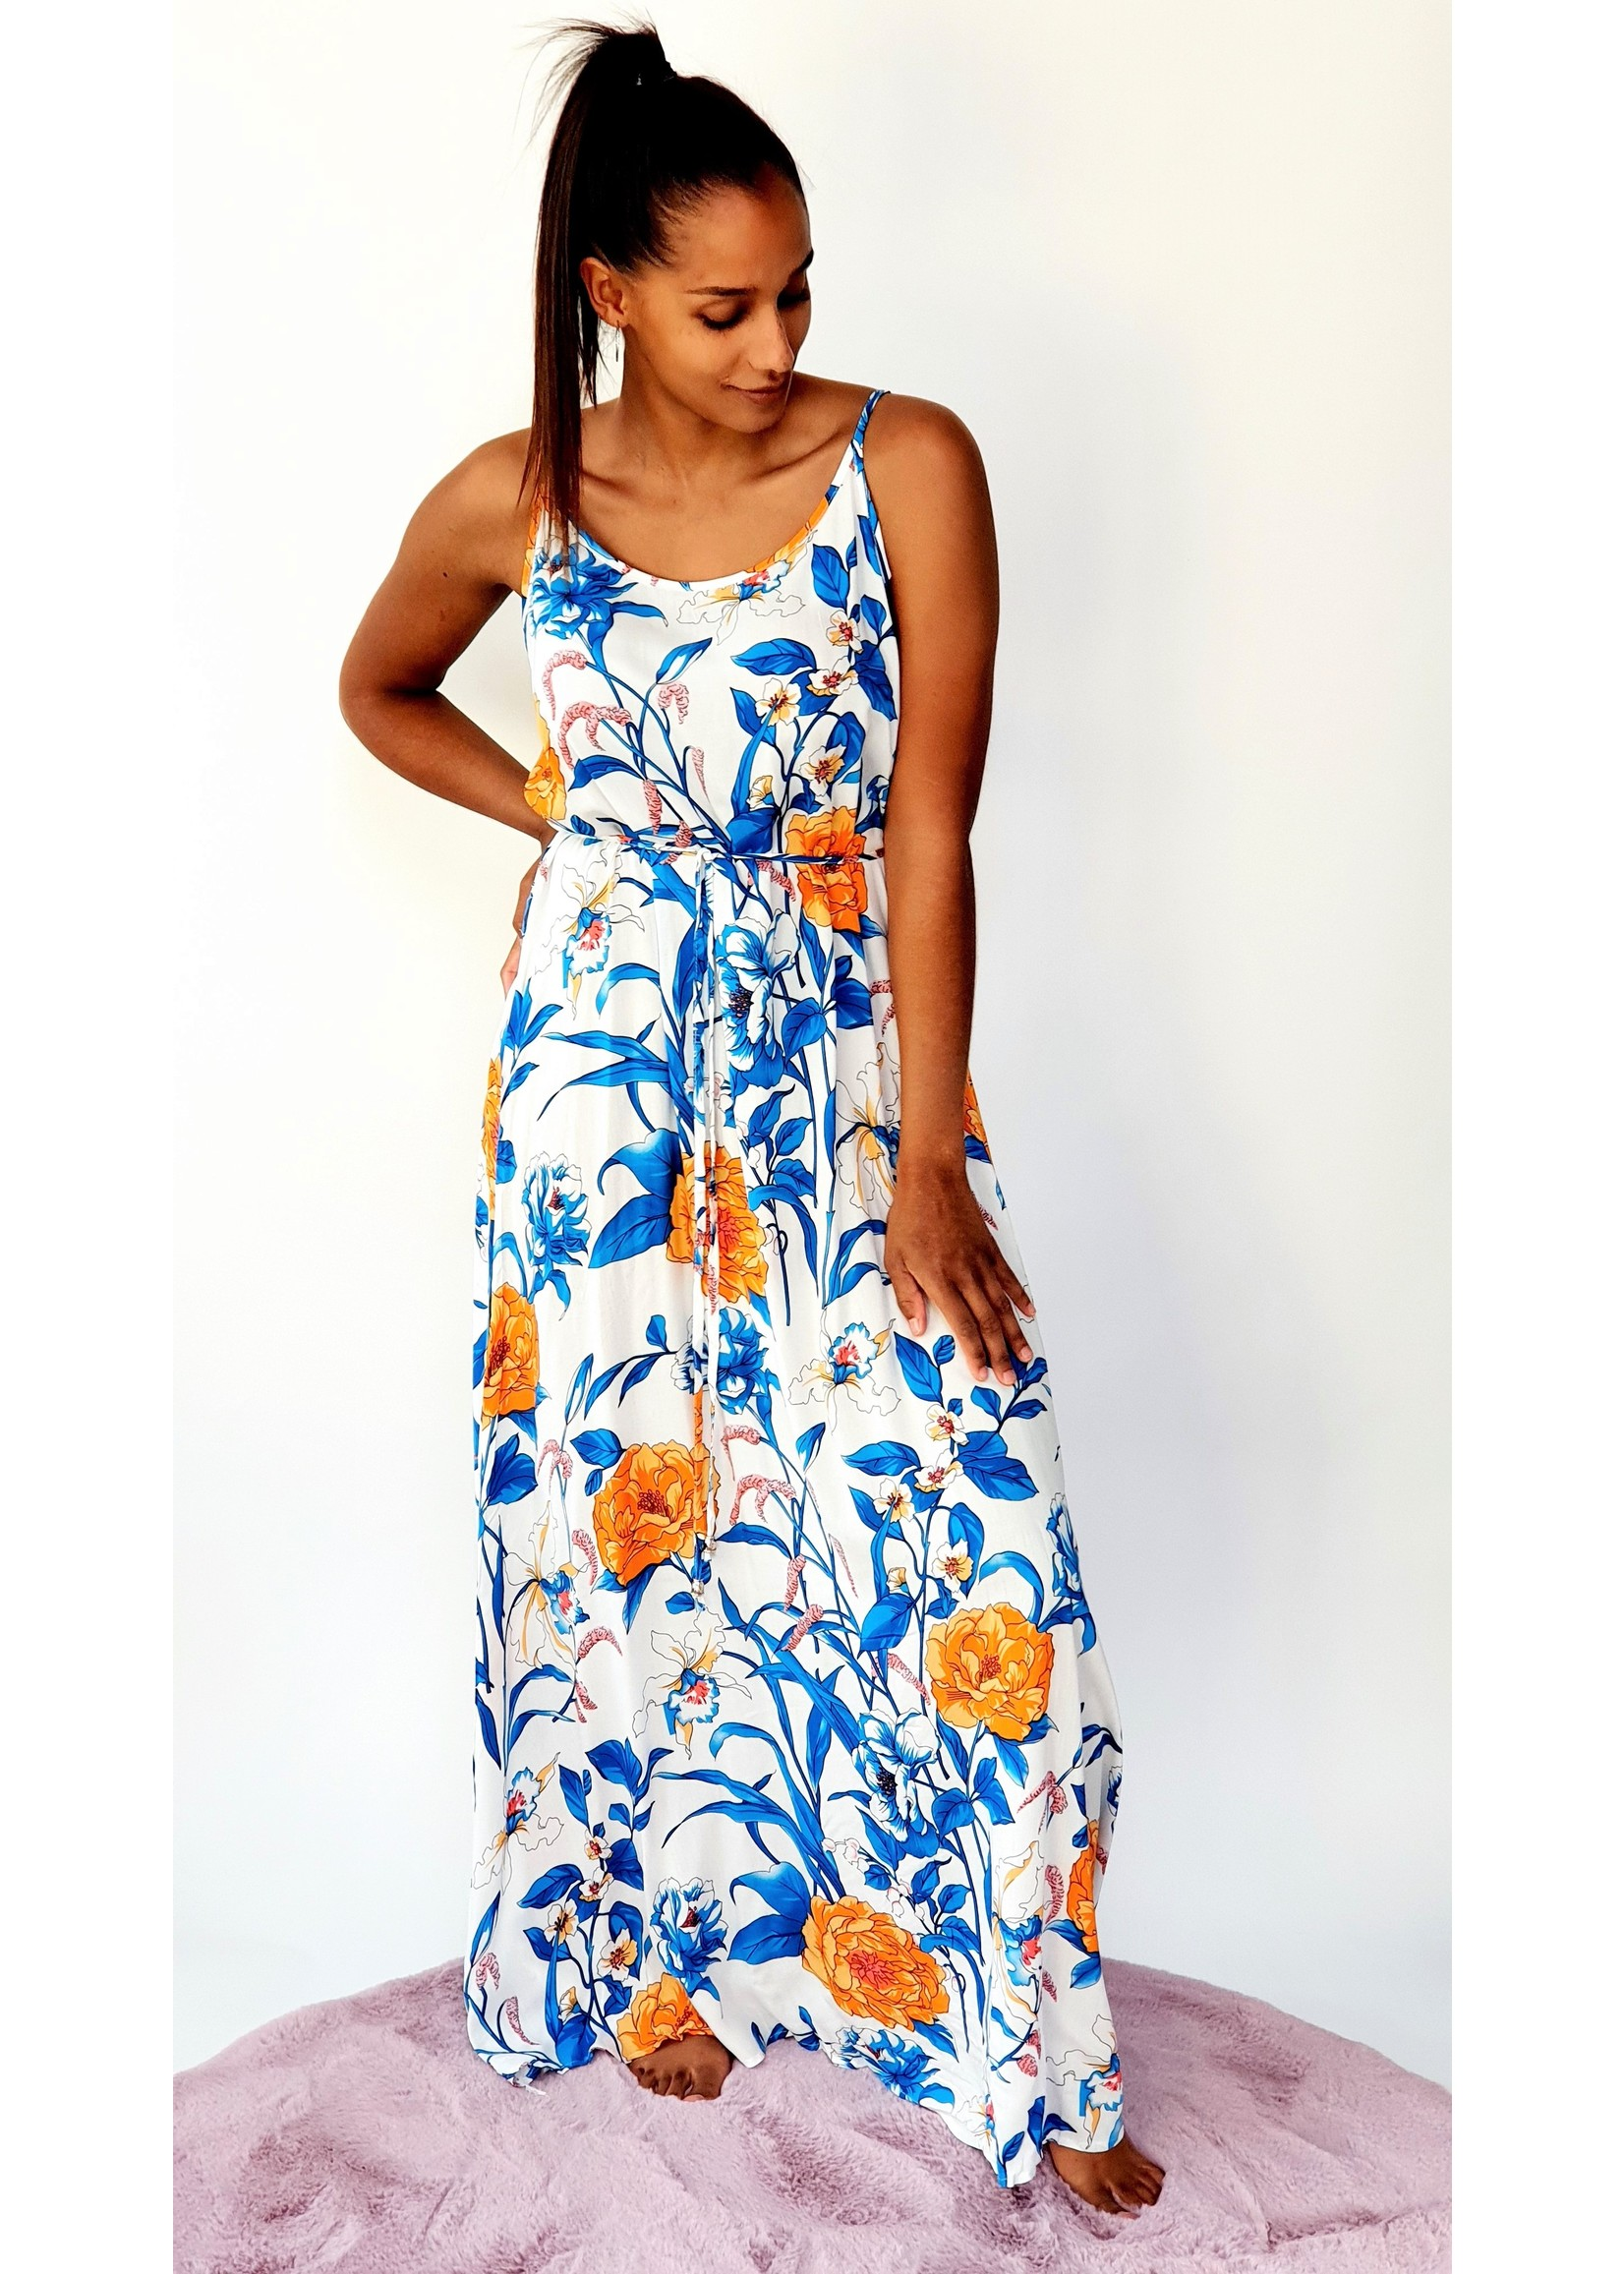 Thé hawai dress